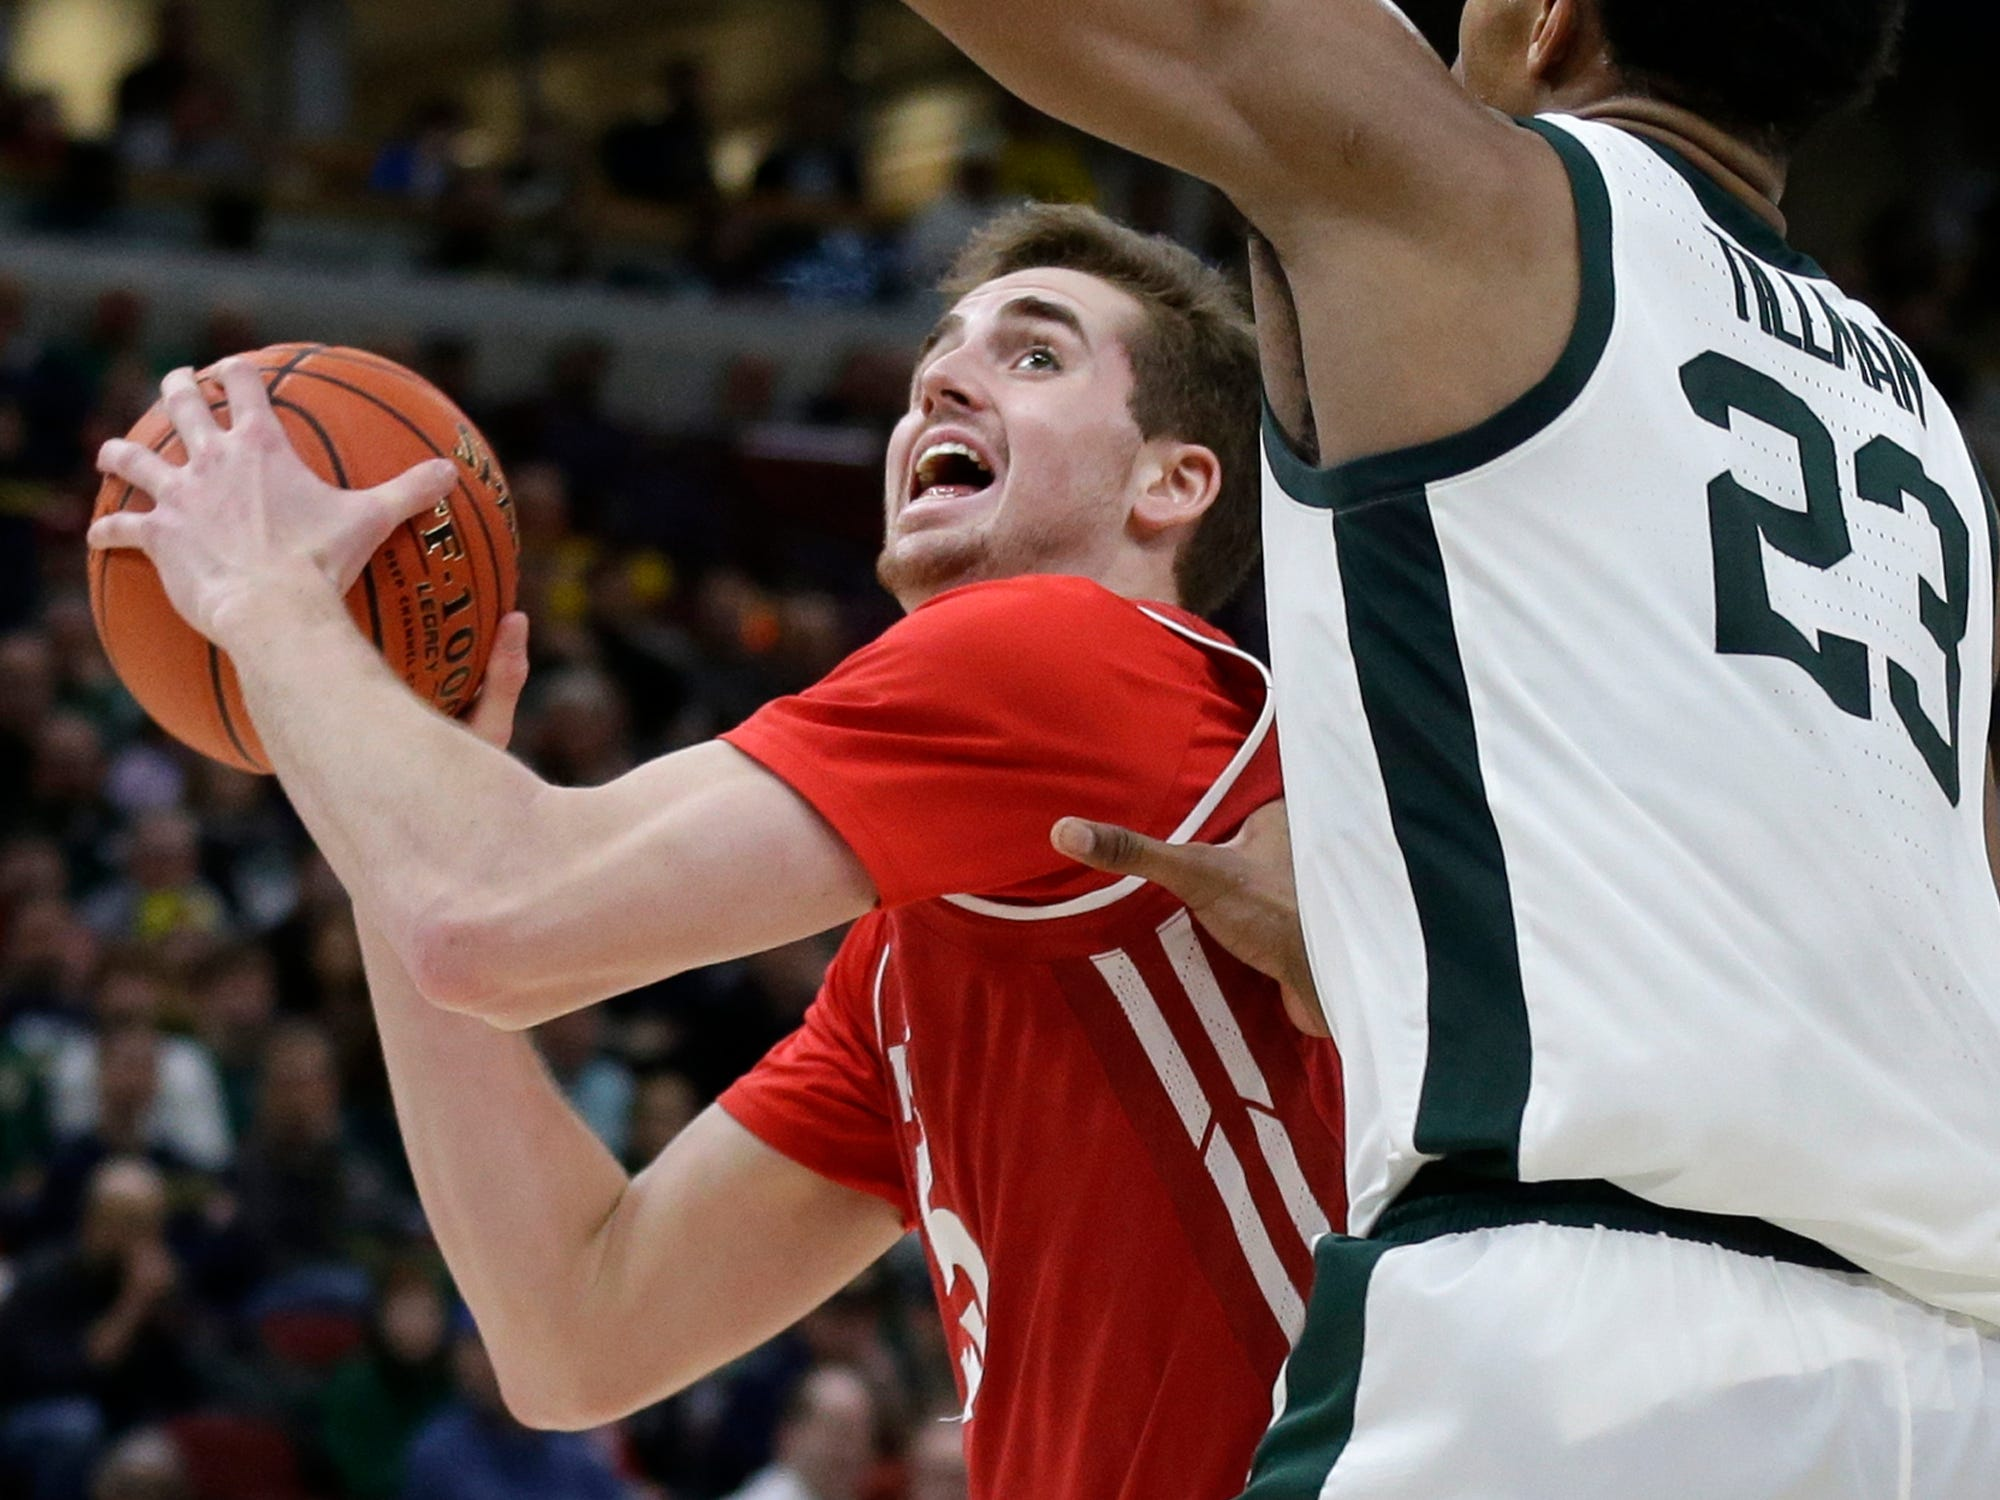 Wisconsin's Nate Reuvers drives against Michigan State's Xavier Tillman (23) during the second half of an NCAA college basketball game in the semifinals of the Big Ten Conference tournament, Saturday, March 16, 2019, in Chicago.